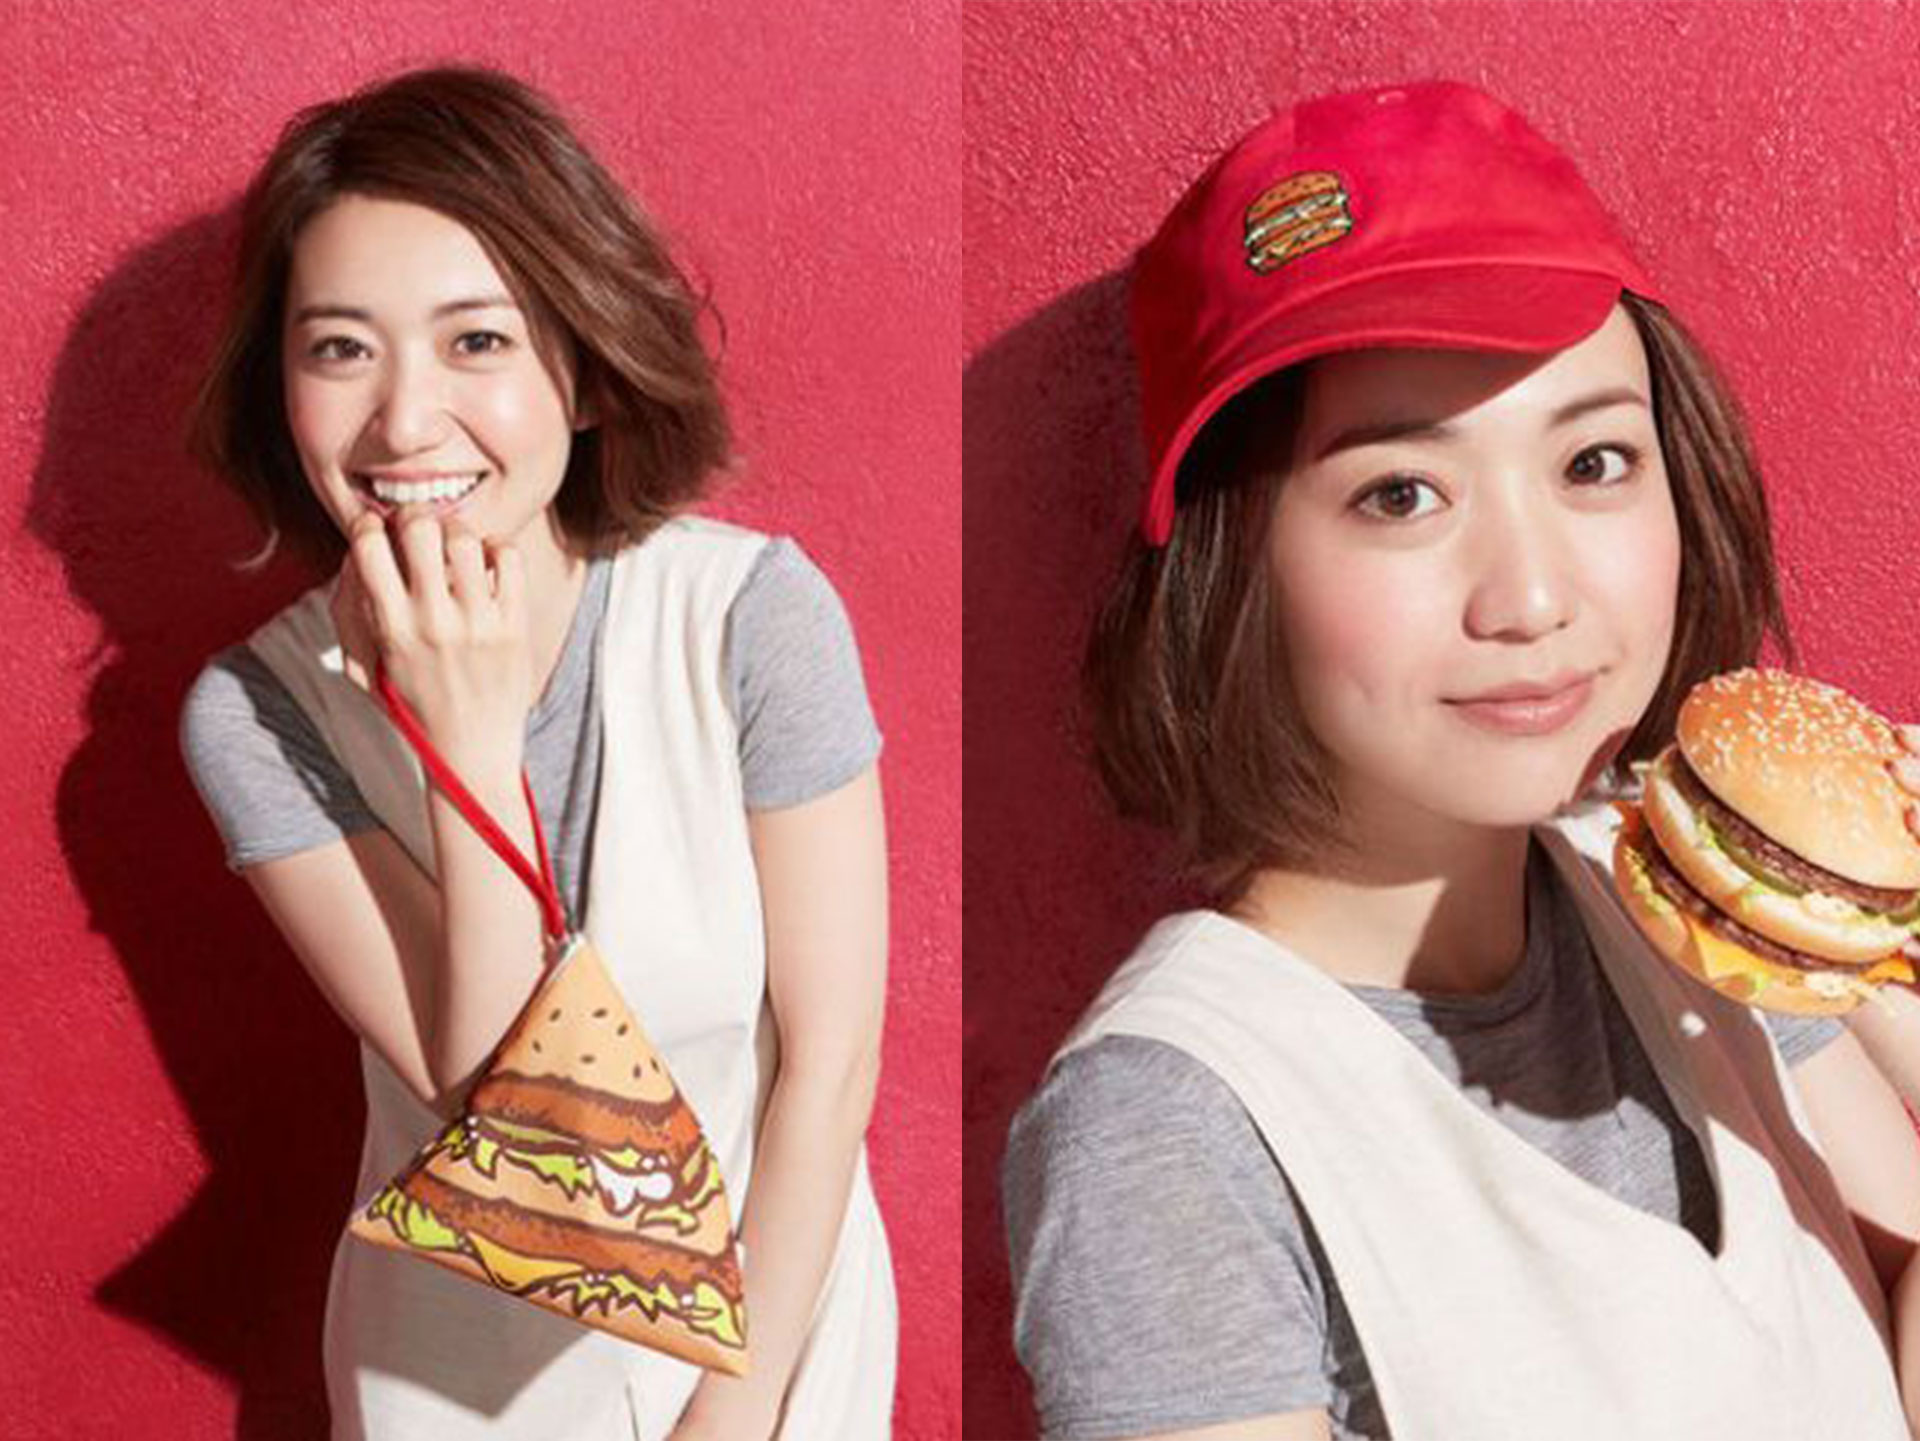 Get those wallets out, McDonald's now has official Big Mac merchandise